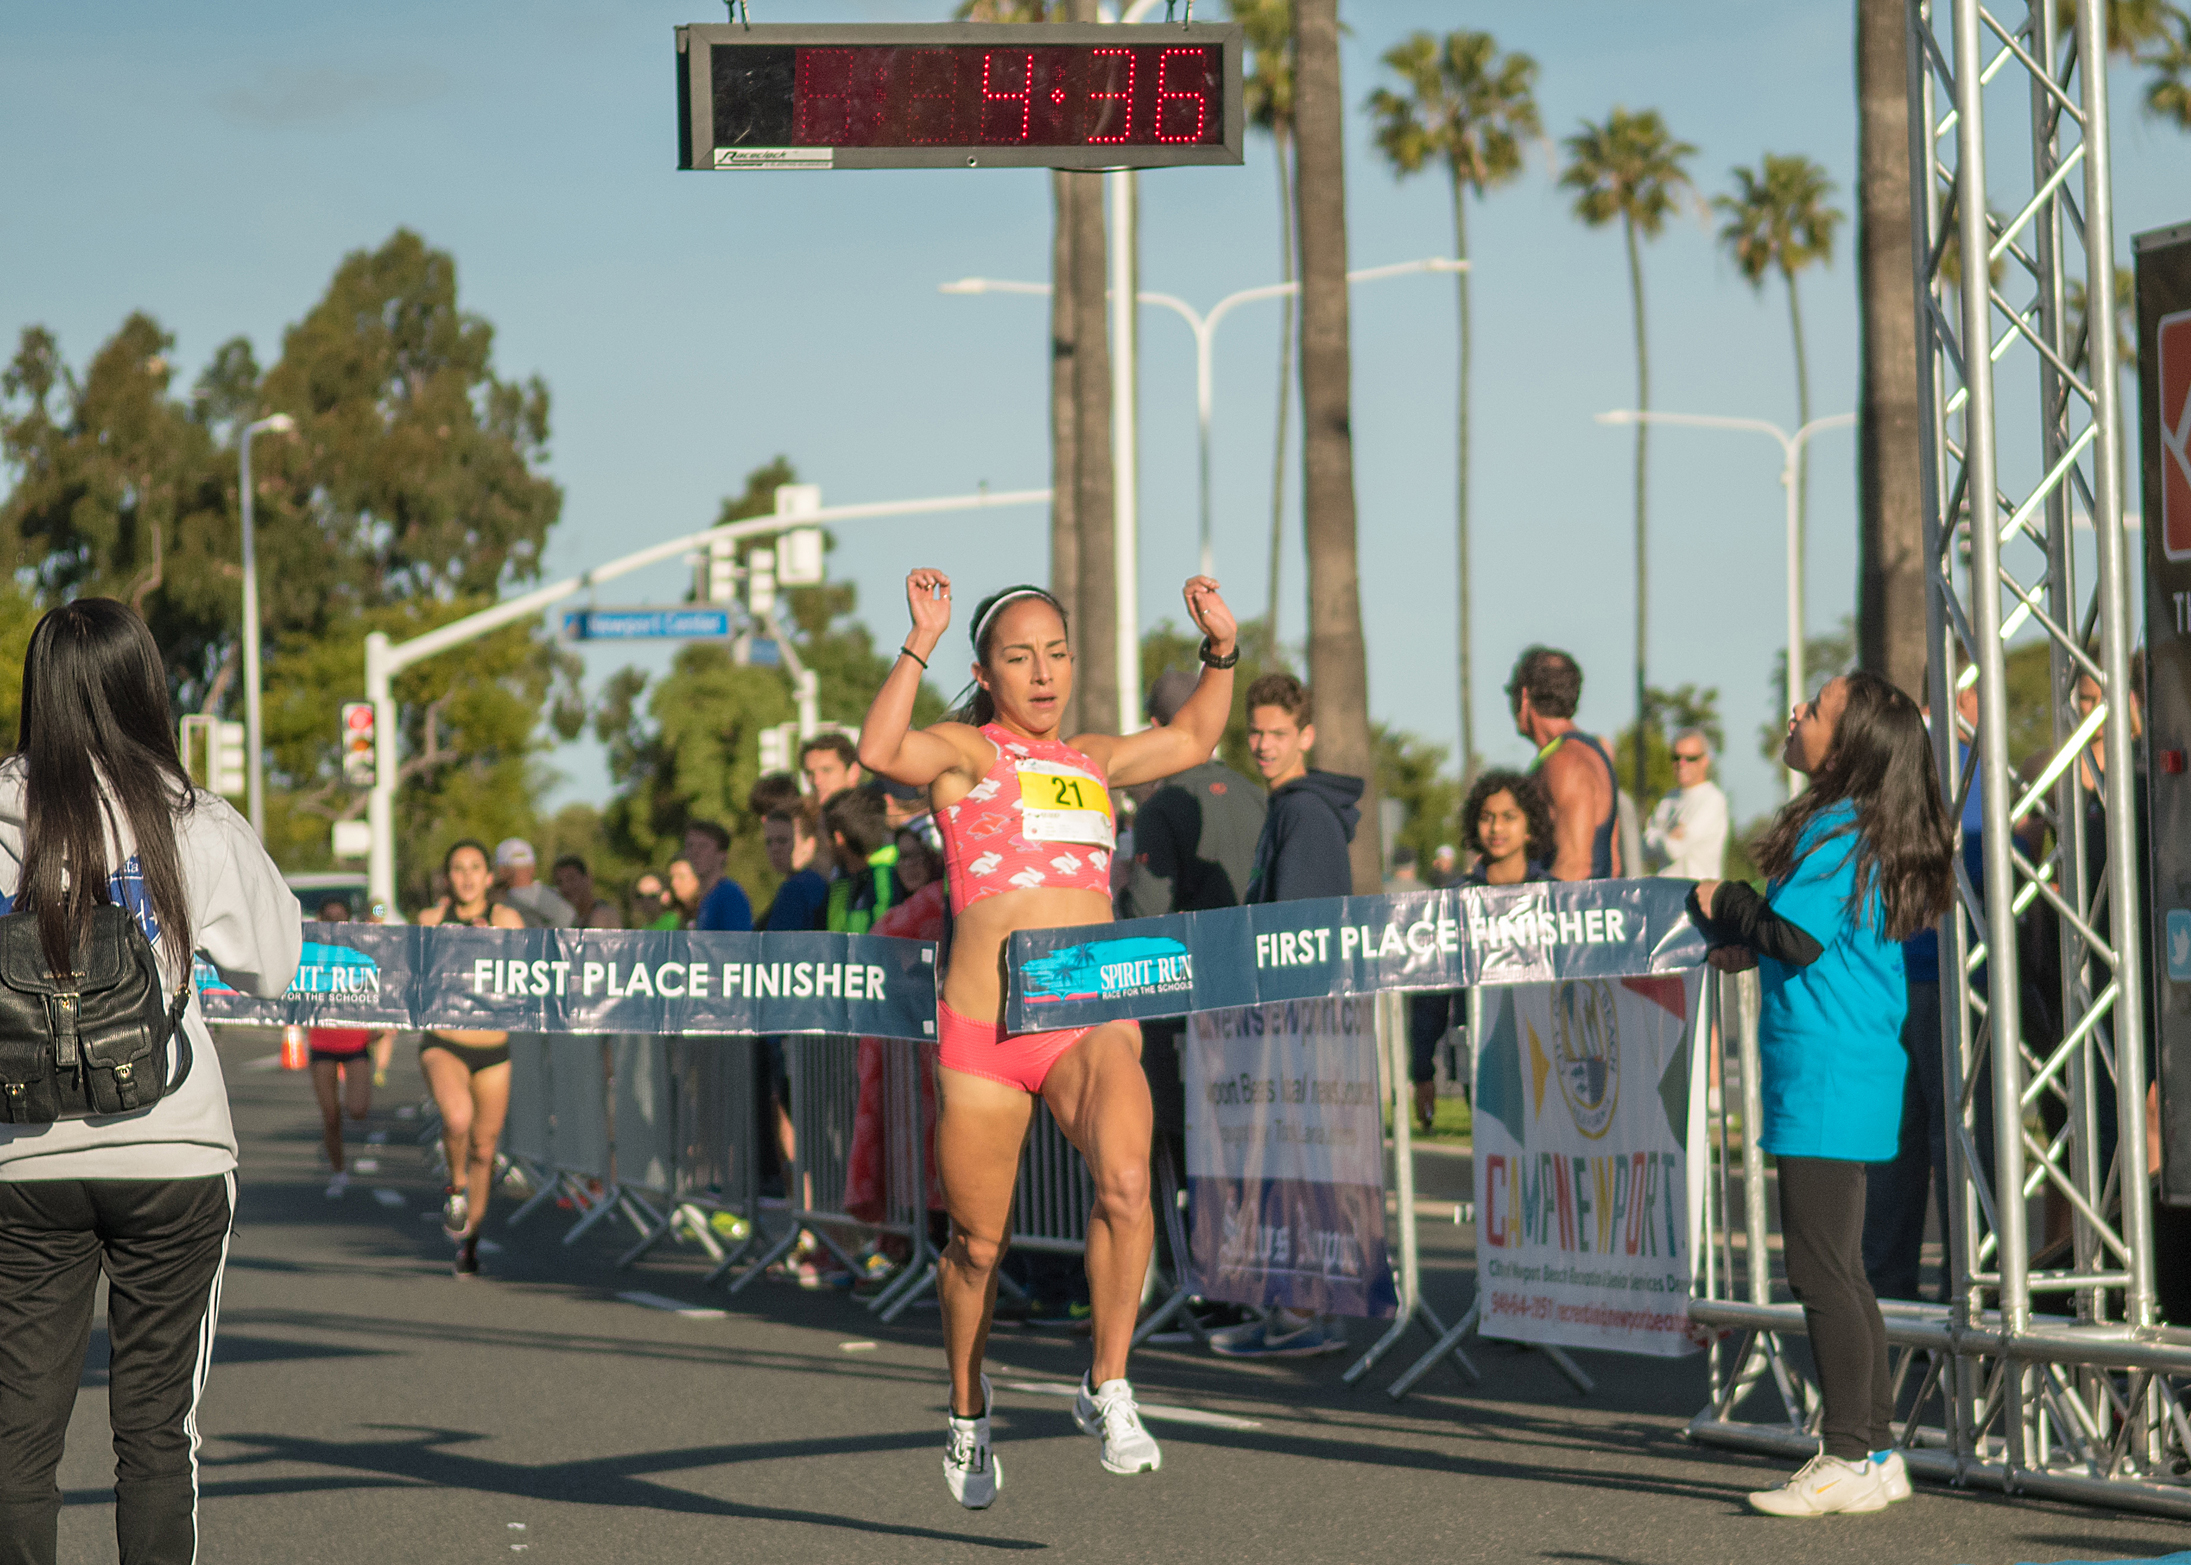 Ayla Granados - 1st Place Female Spirit Run 2018 Elite Mile.All American Chico State over 1500 meters6th US Road Mile Championships 2016Smoking Fast 4:23 at the SB road mile in 2017Personal Record in the 1500 meters of 4:13Personal Record in 5000 meters on track 16:01